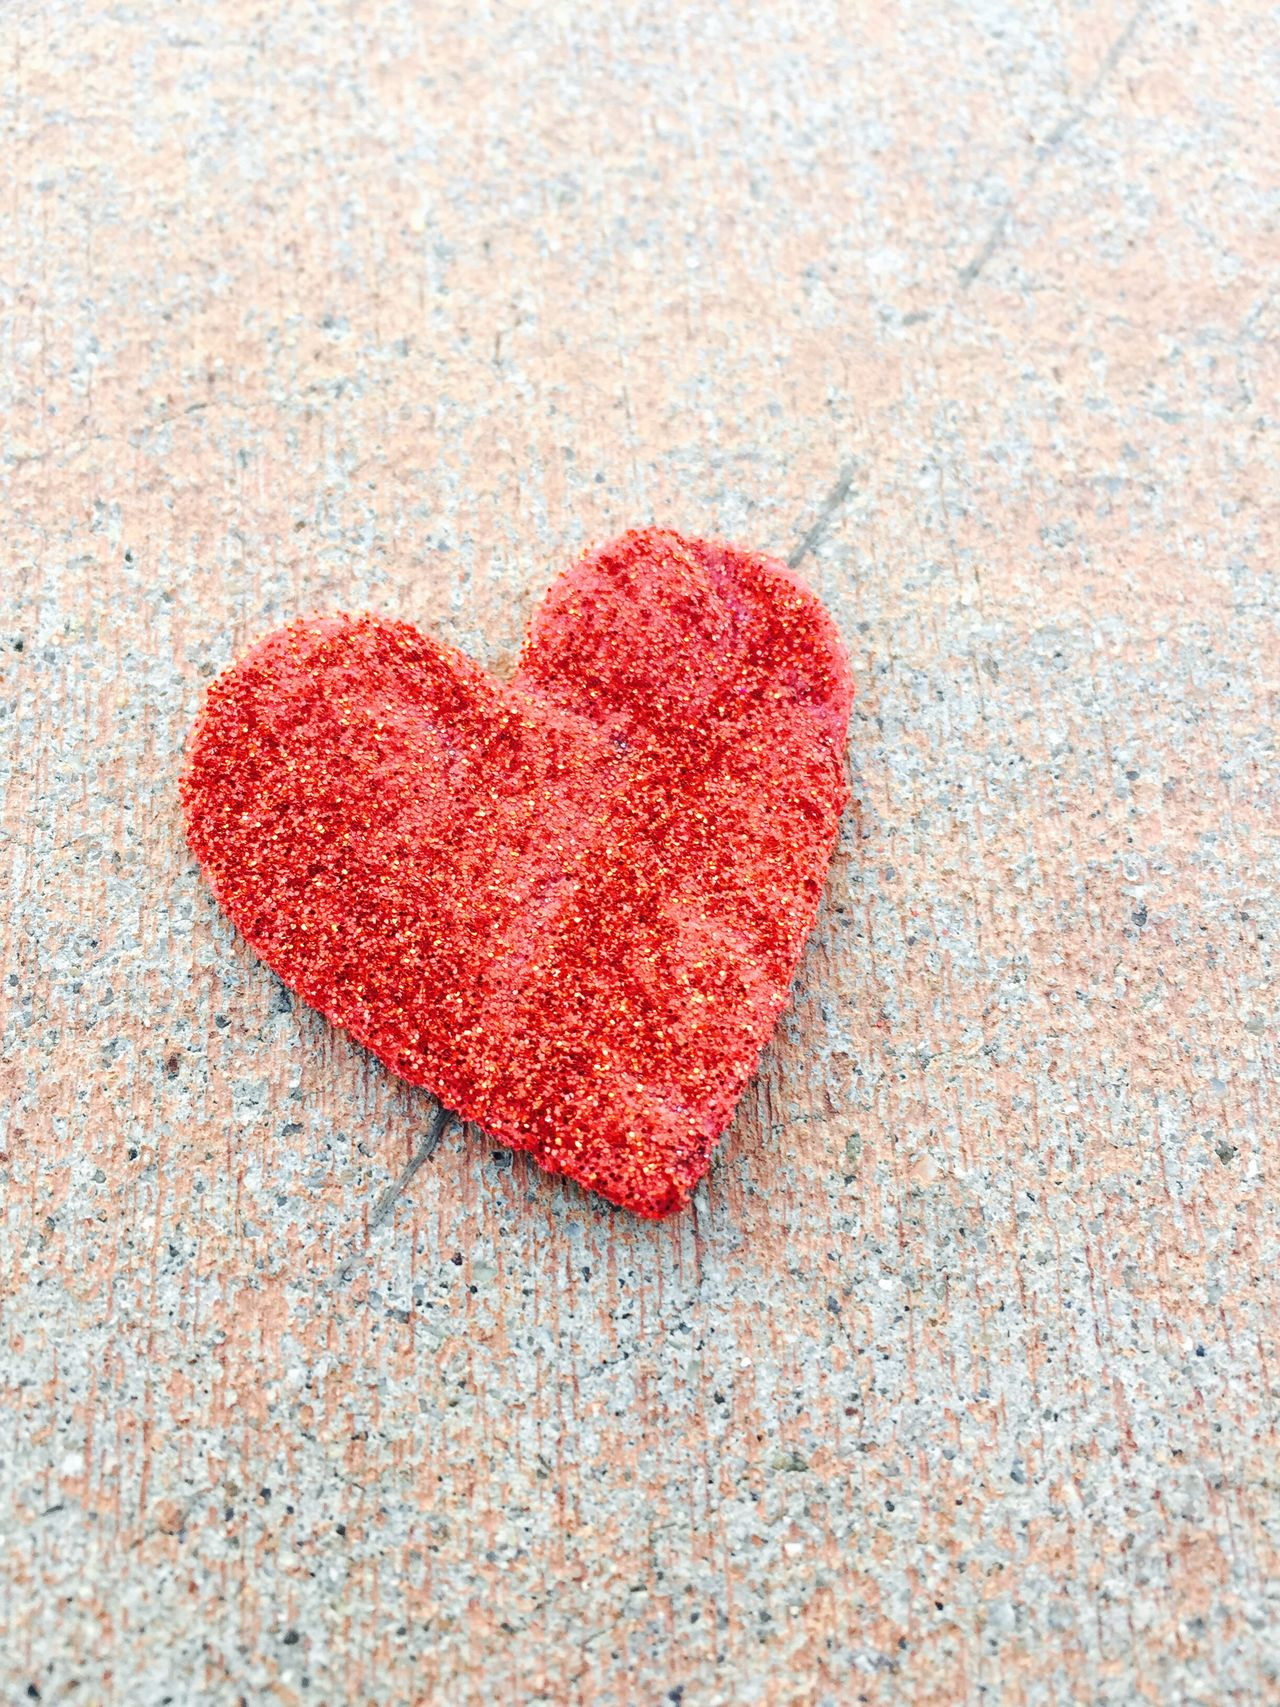 Beautiful stock photos of valentinstag, love, heart shape, valentine's day - holiday, red